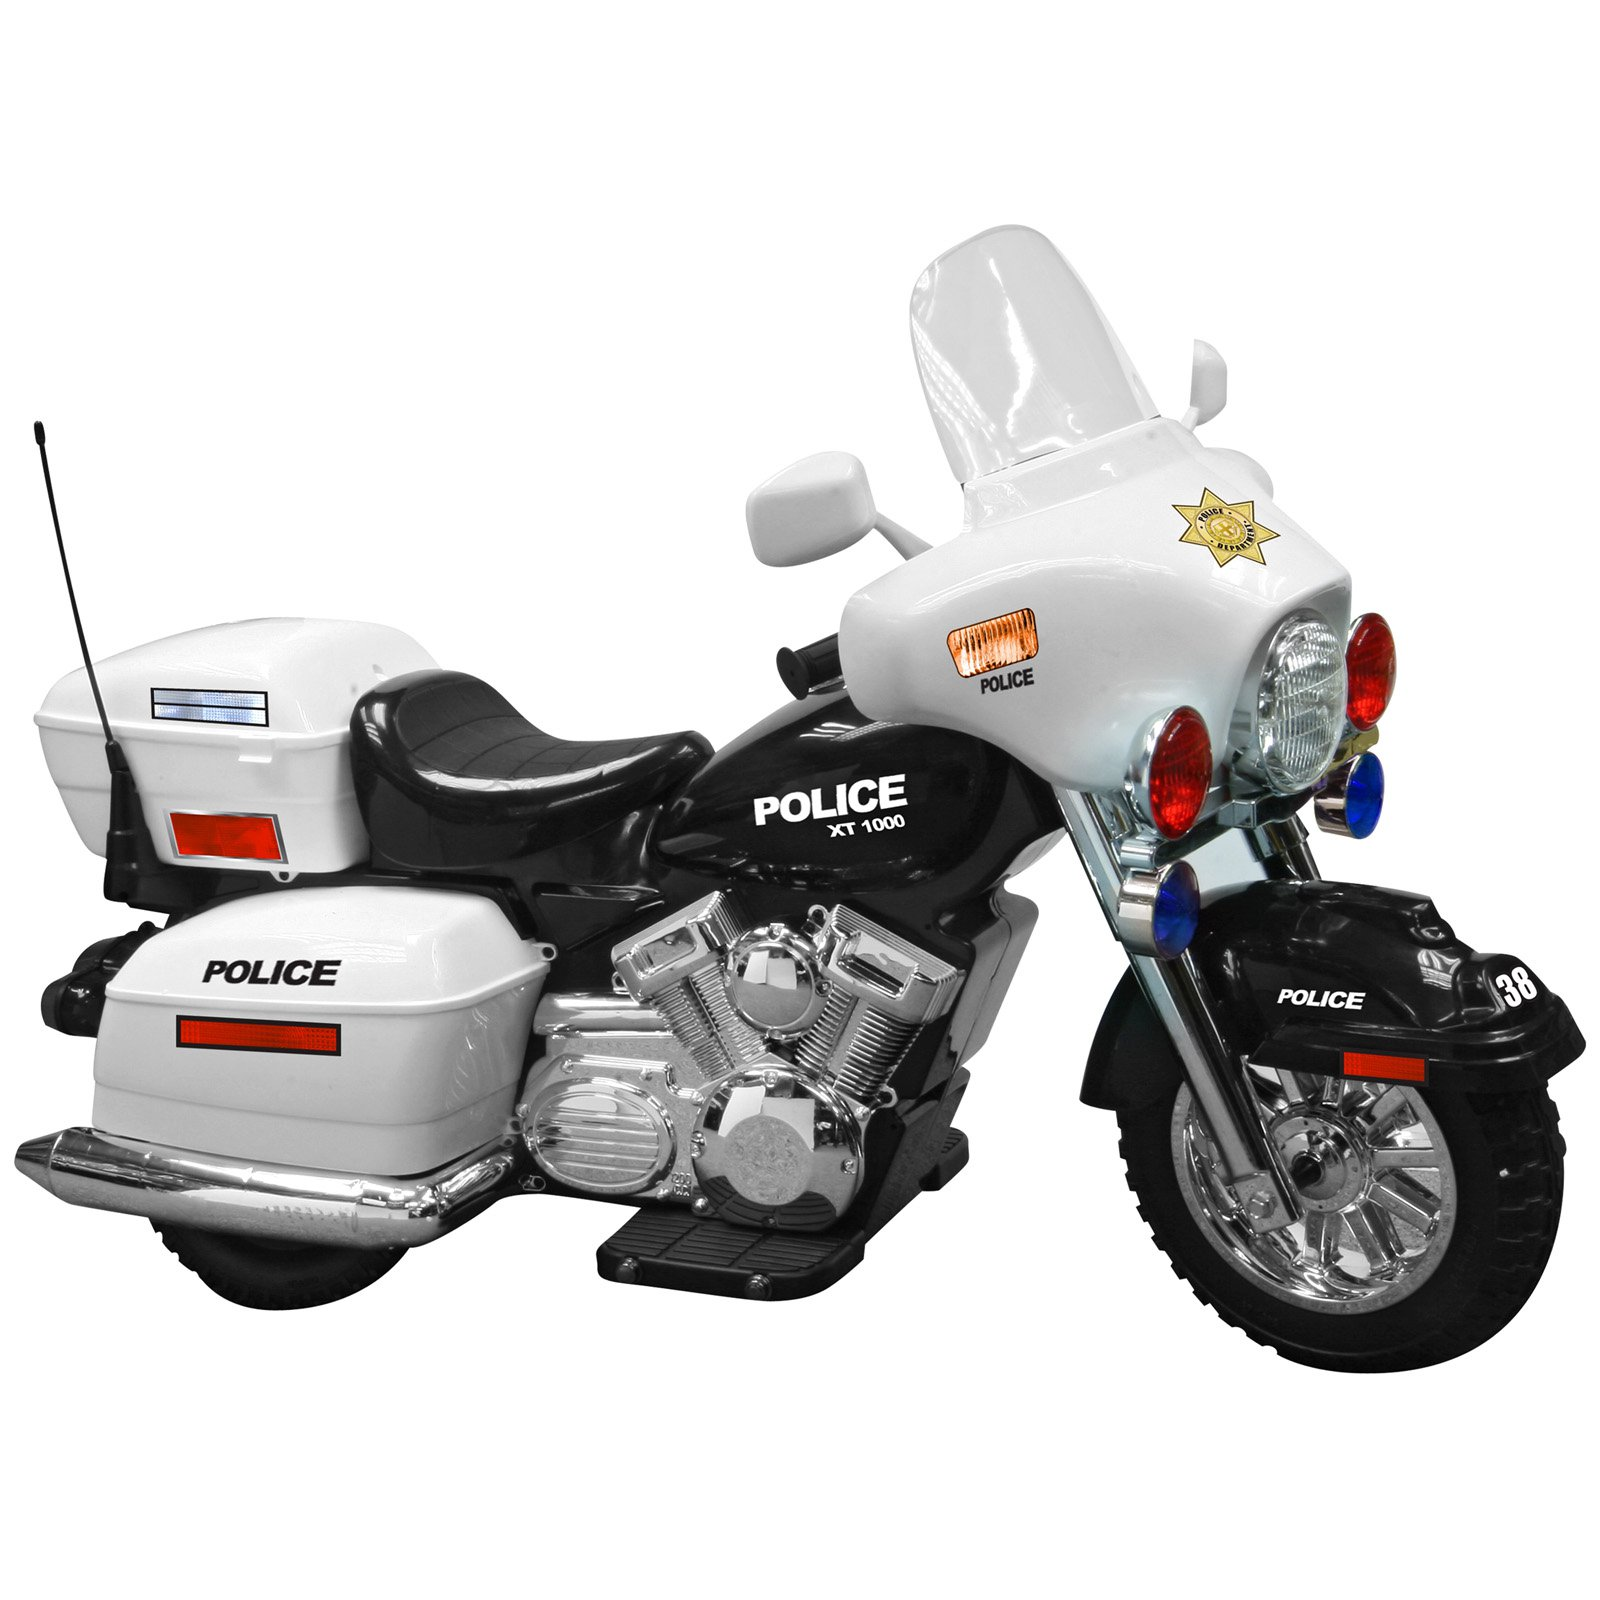 Kid Motorz Police Motorcycle Battery Powered Riding Toy - Walmart.com